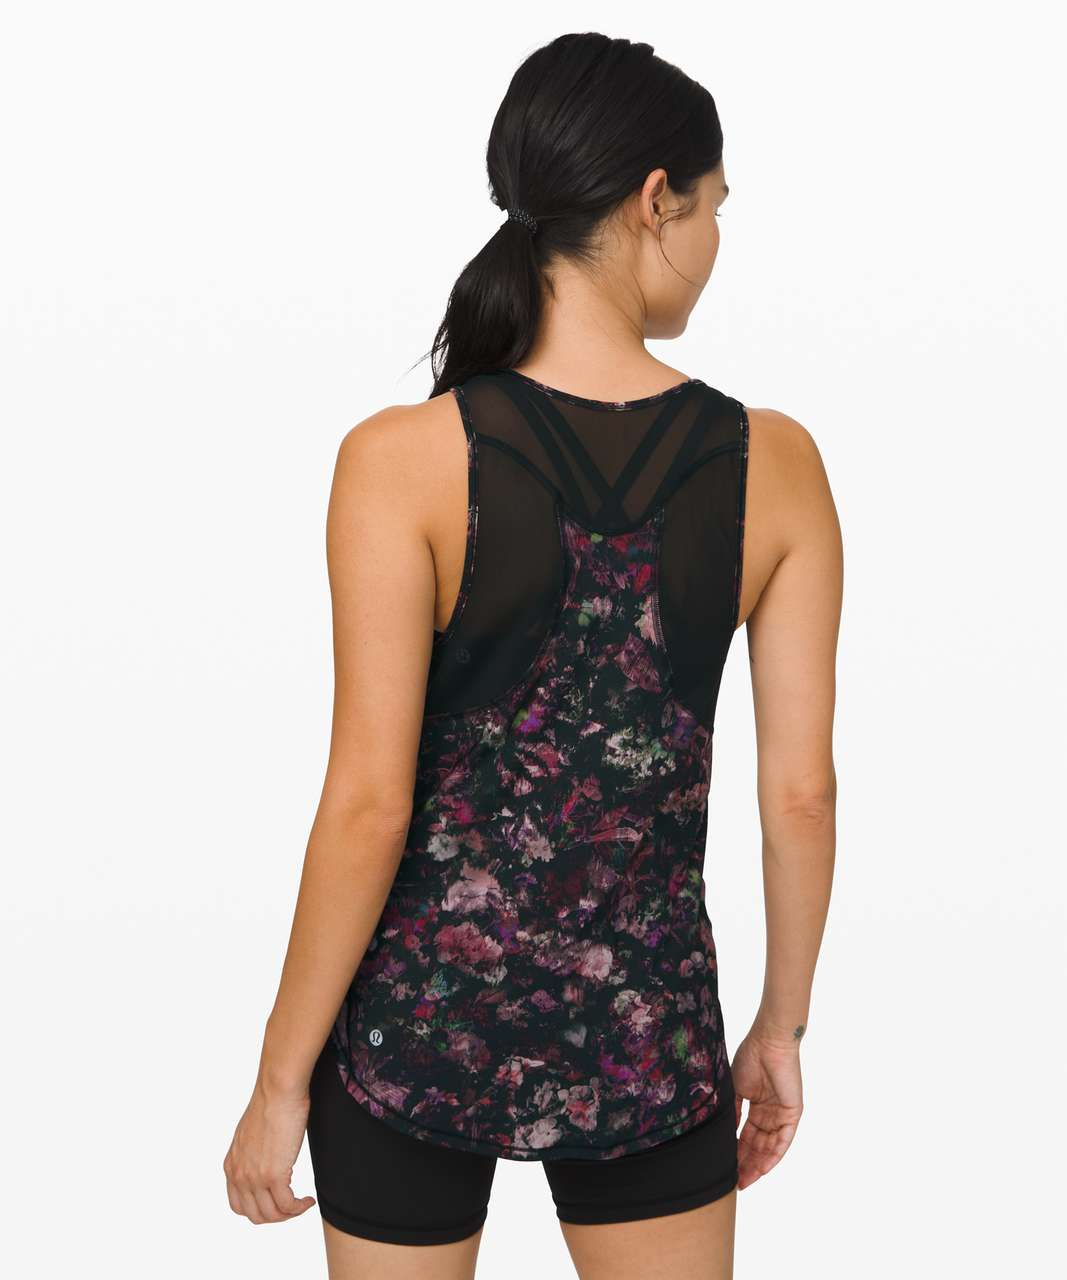 Lululemon Sculpt Tank II - Floral Illusion Antique White Multi